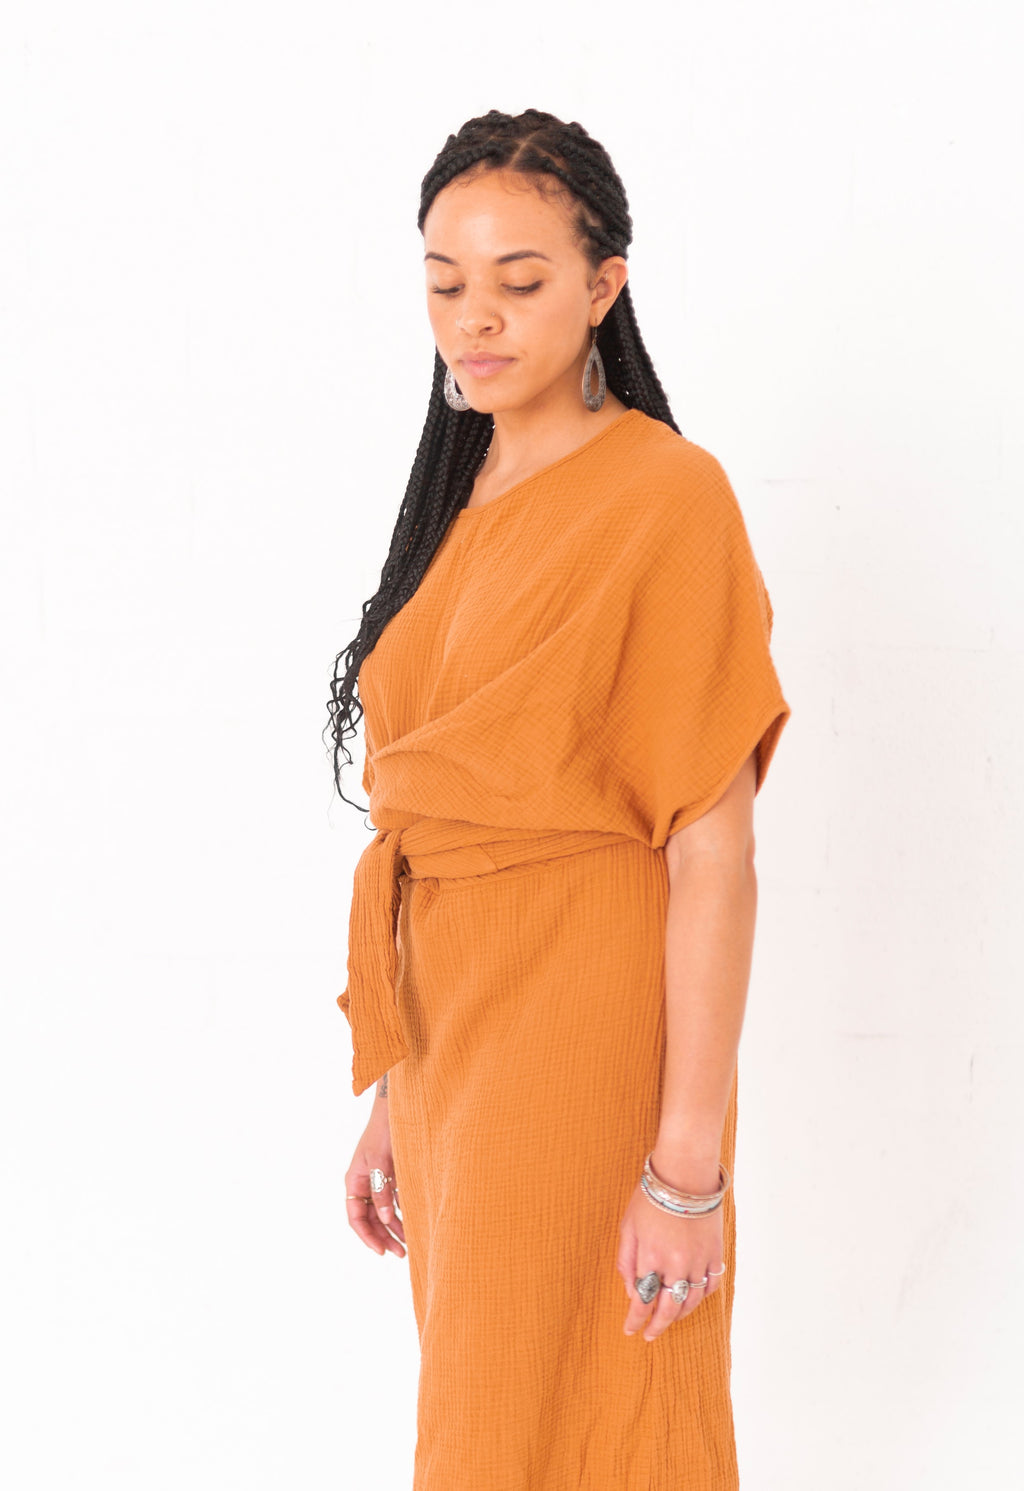 The Dolman Dress in Meerkat